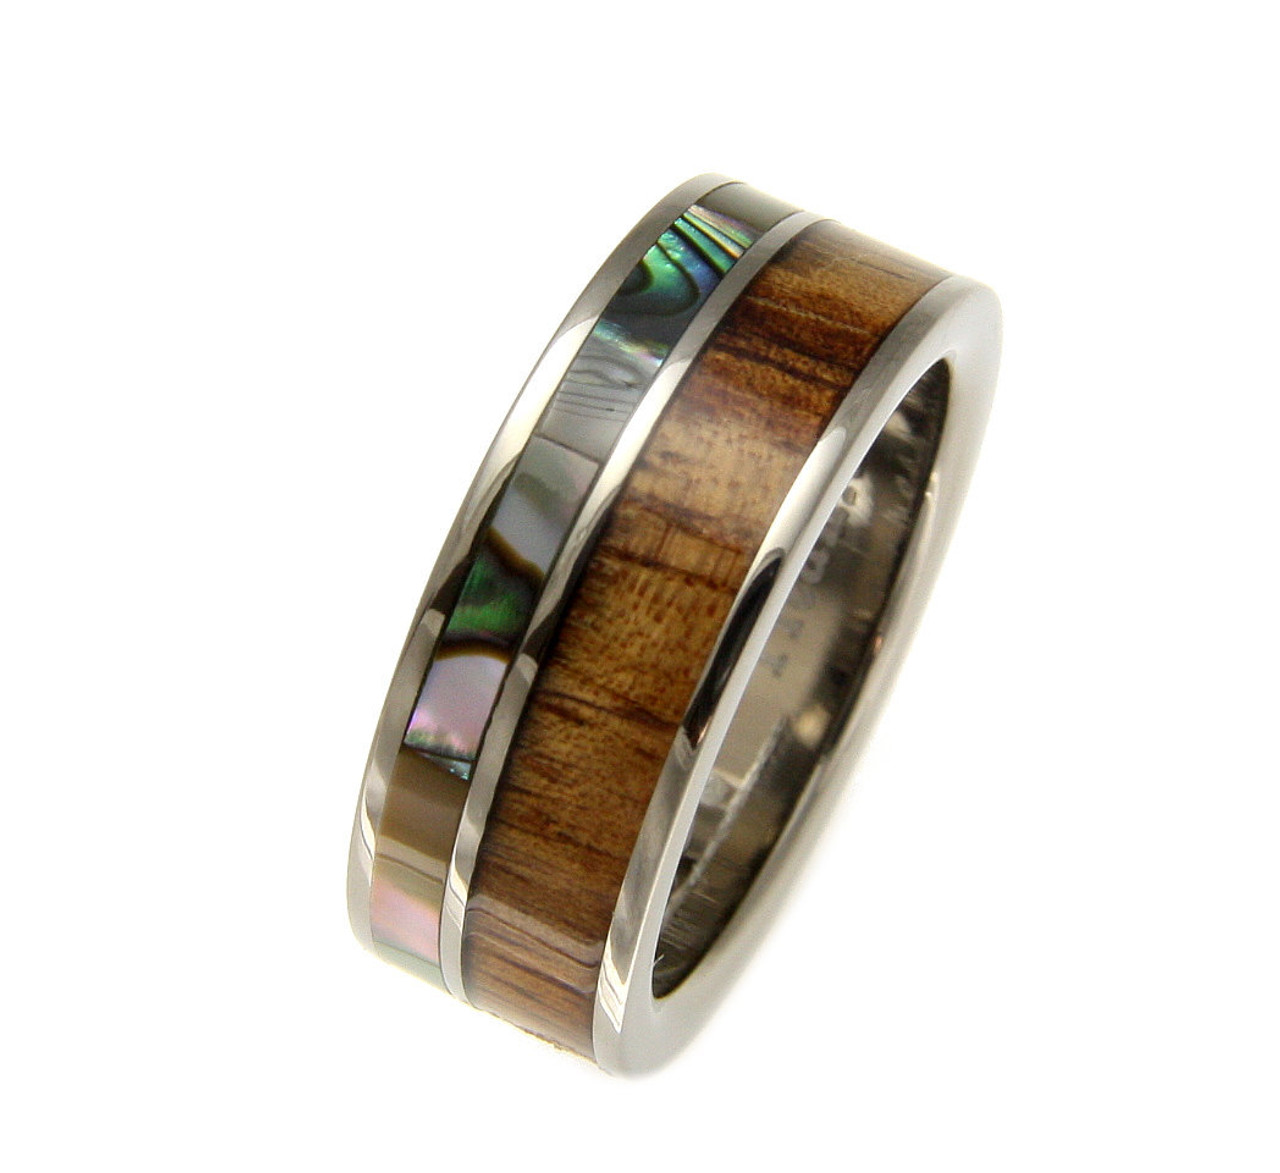 Faithful Titanium 14k Yellow Inlay 8 Mm Brushed Wedding Band Selected Material Engagement & Wedding Bridal & Wedding Party Jewelry